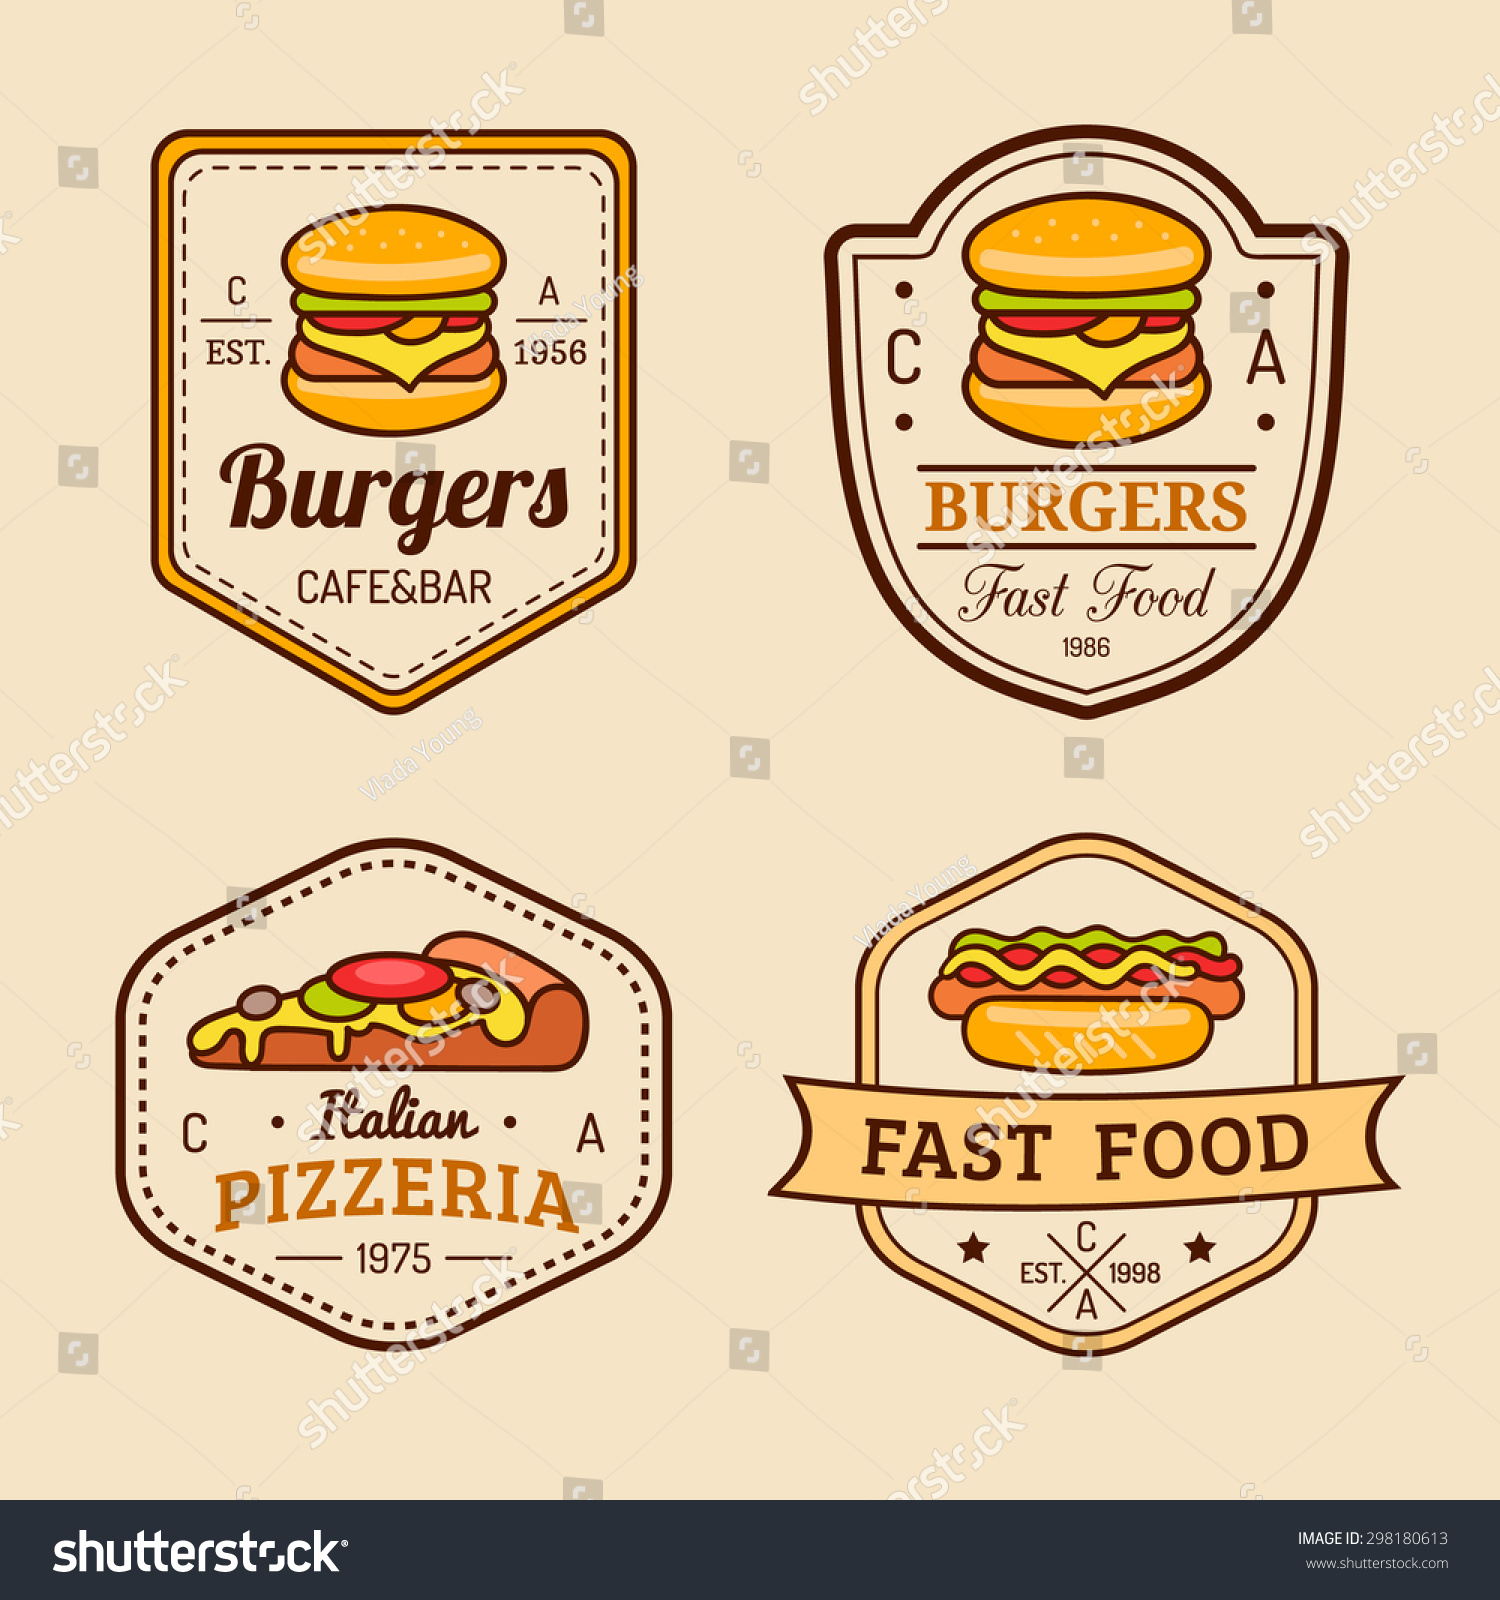 Vector Vintage Fast Food Logos Set Stock Vector Royalty Free 298180613